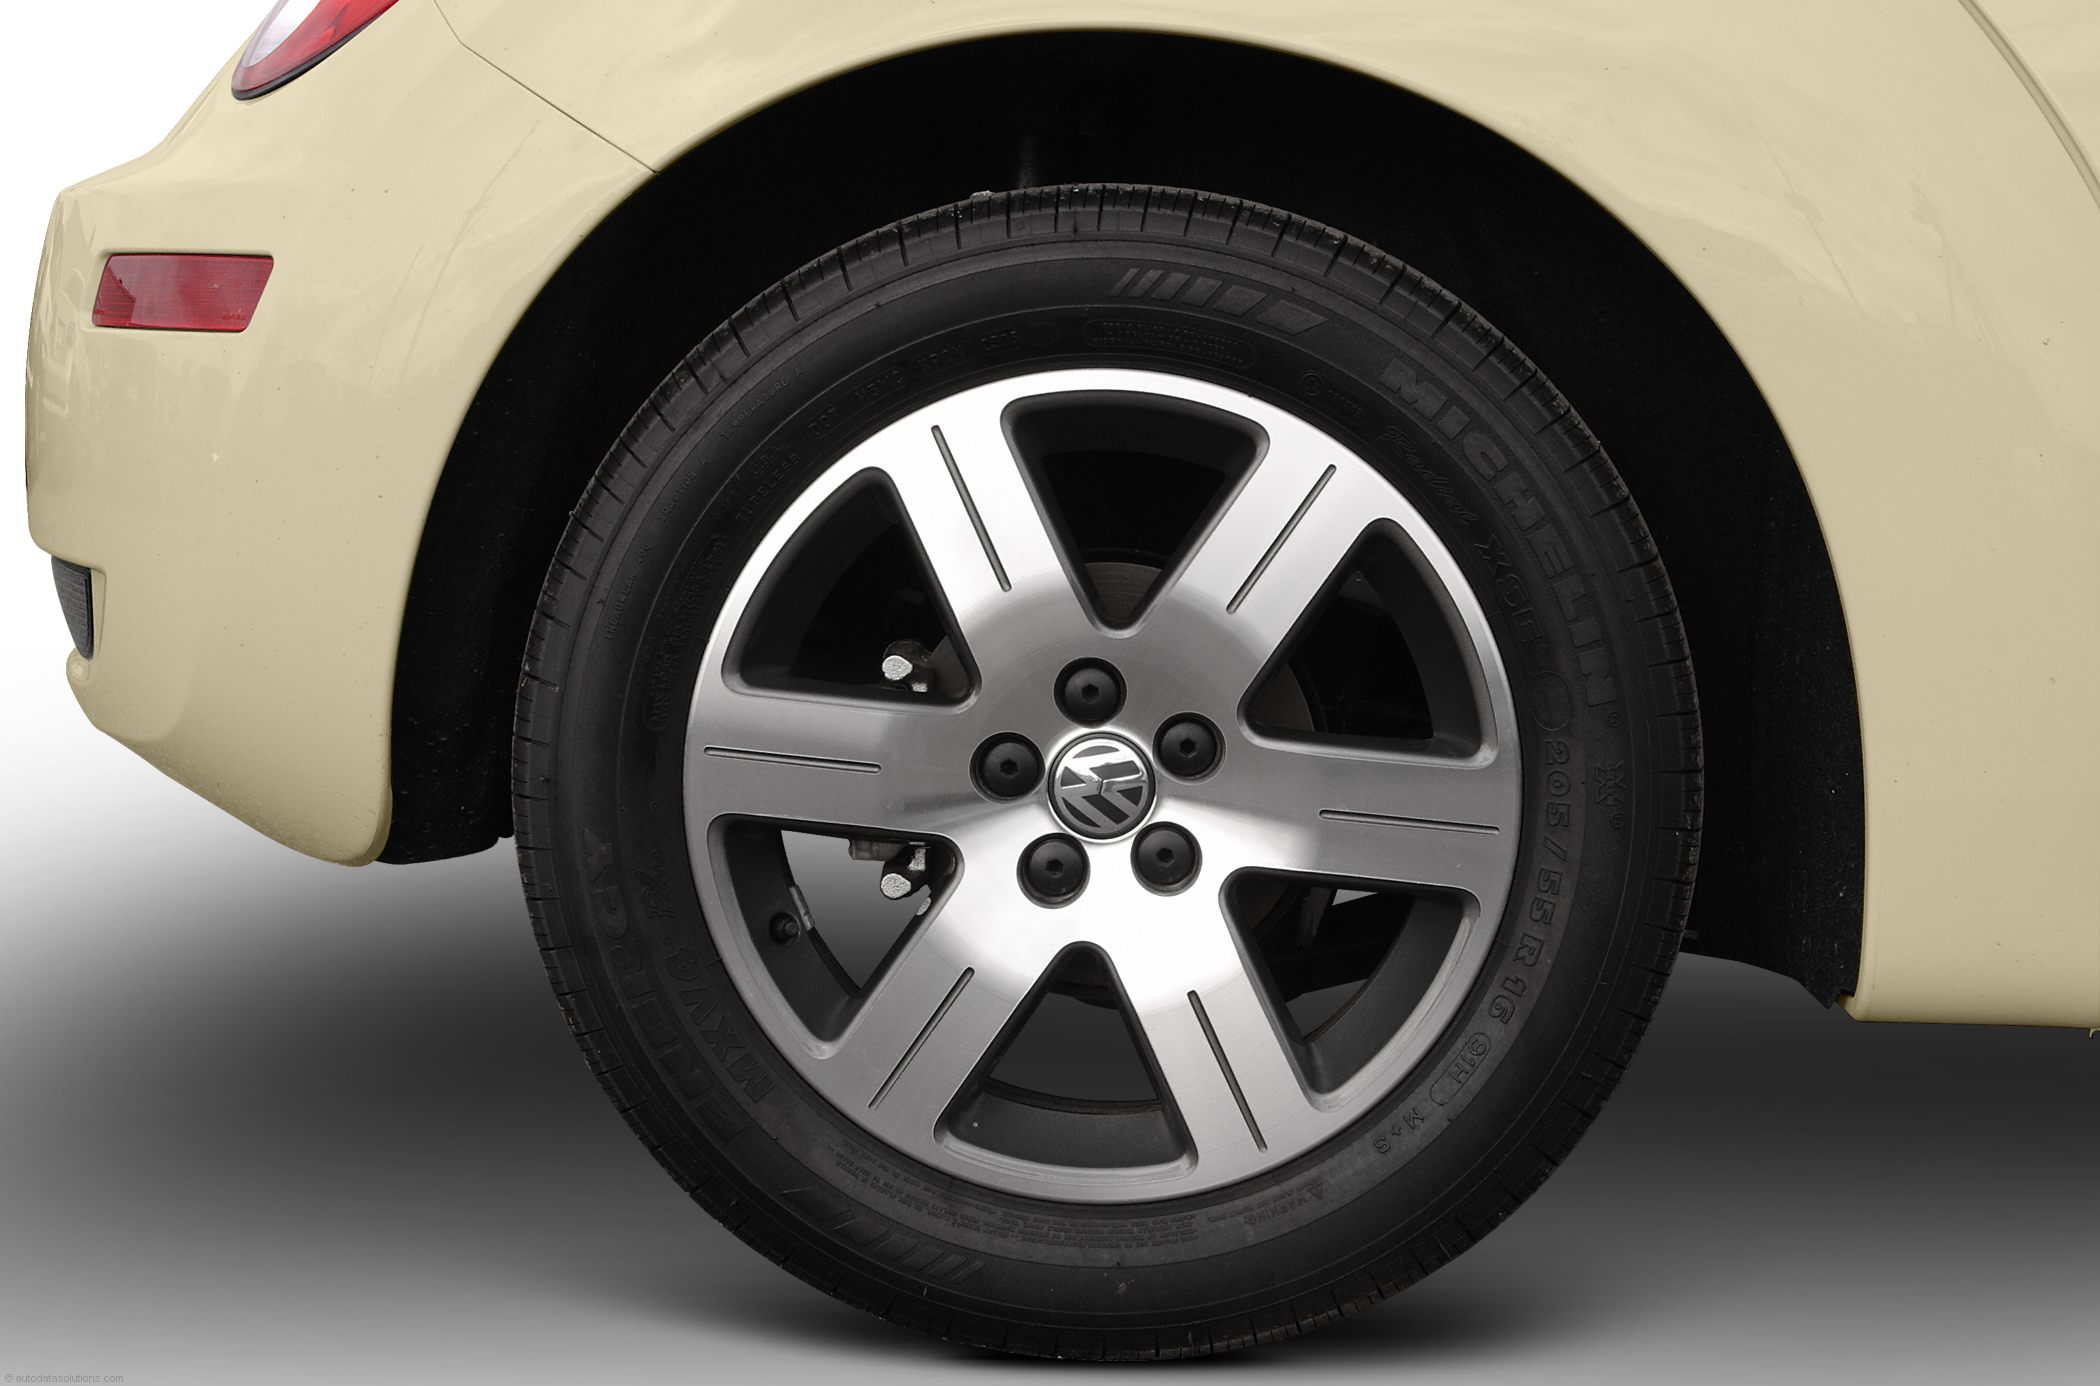 Volkswagen New Beetle wheels #2